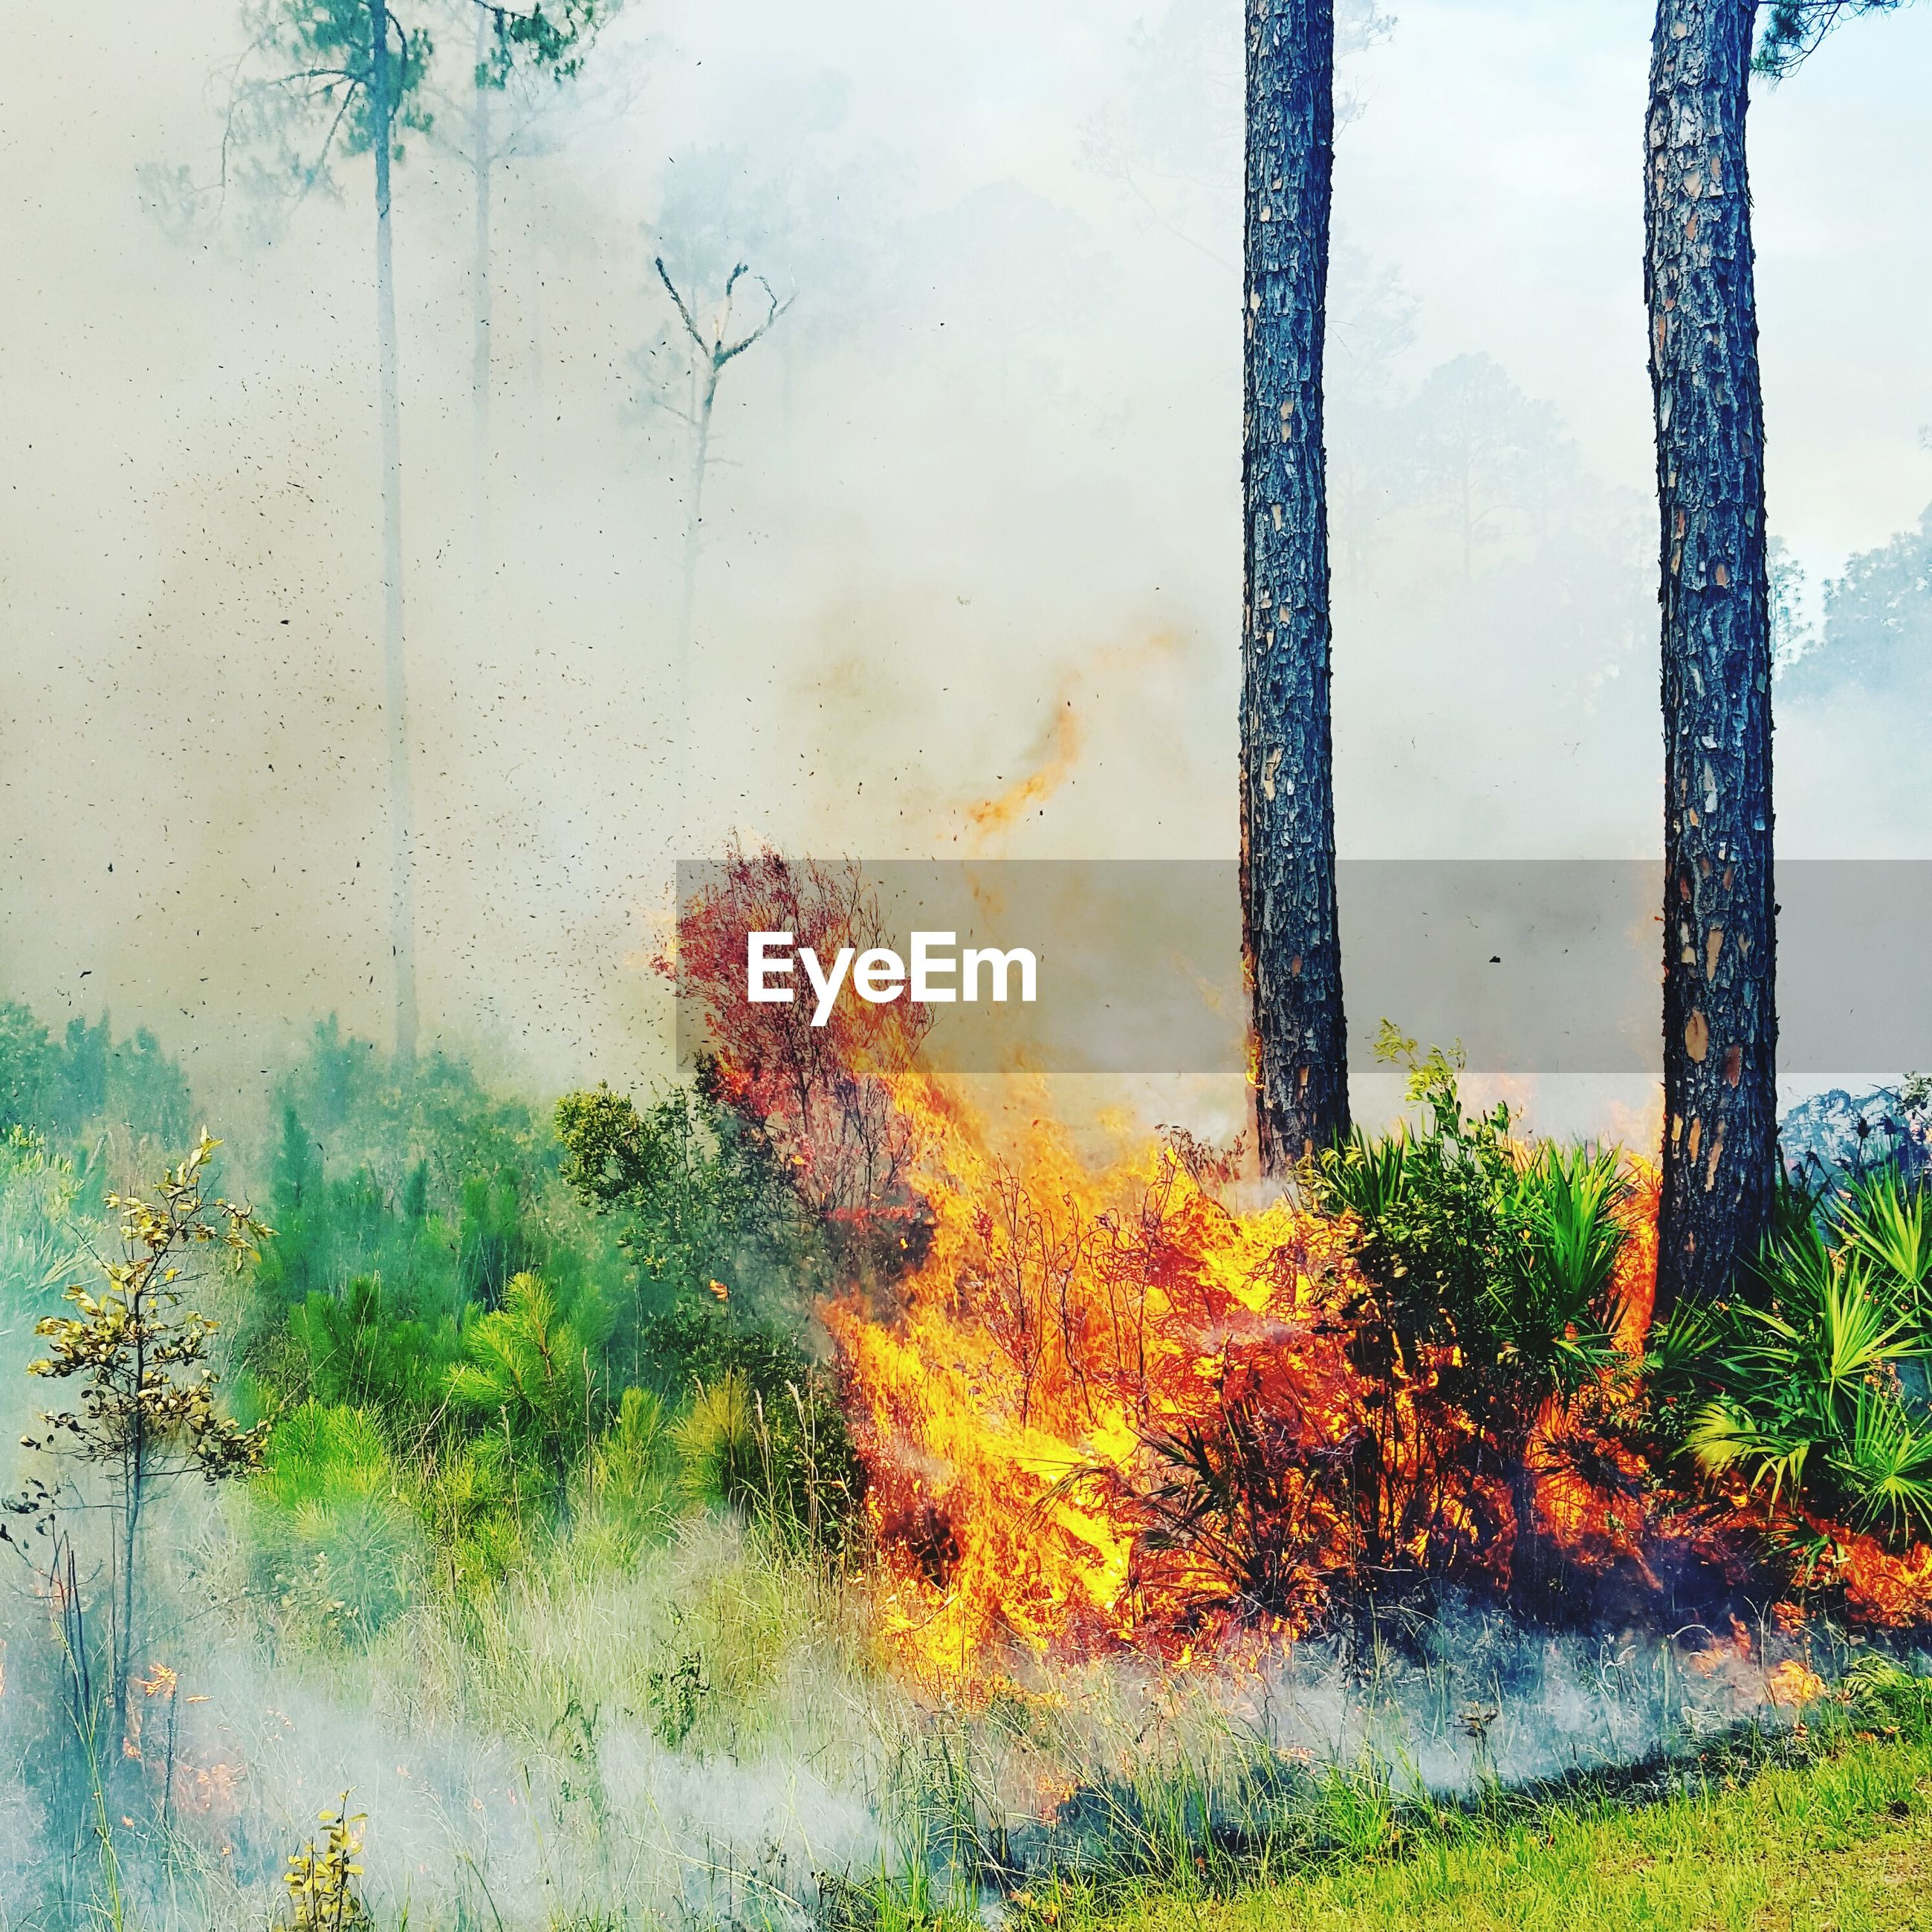 Plants burning in forest